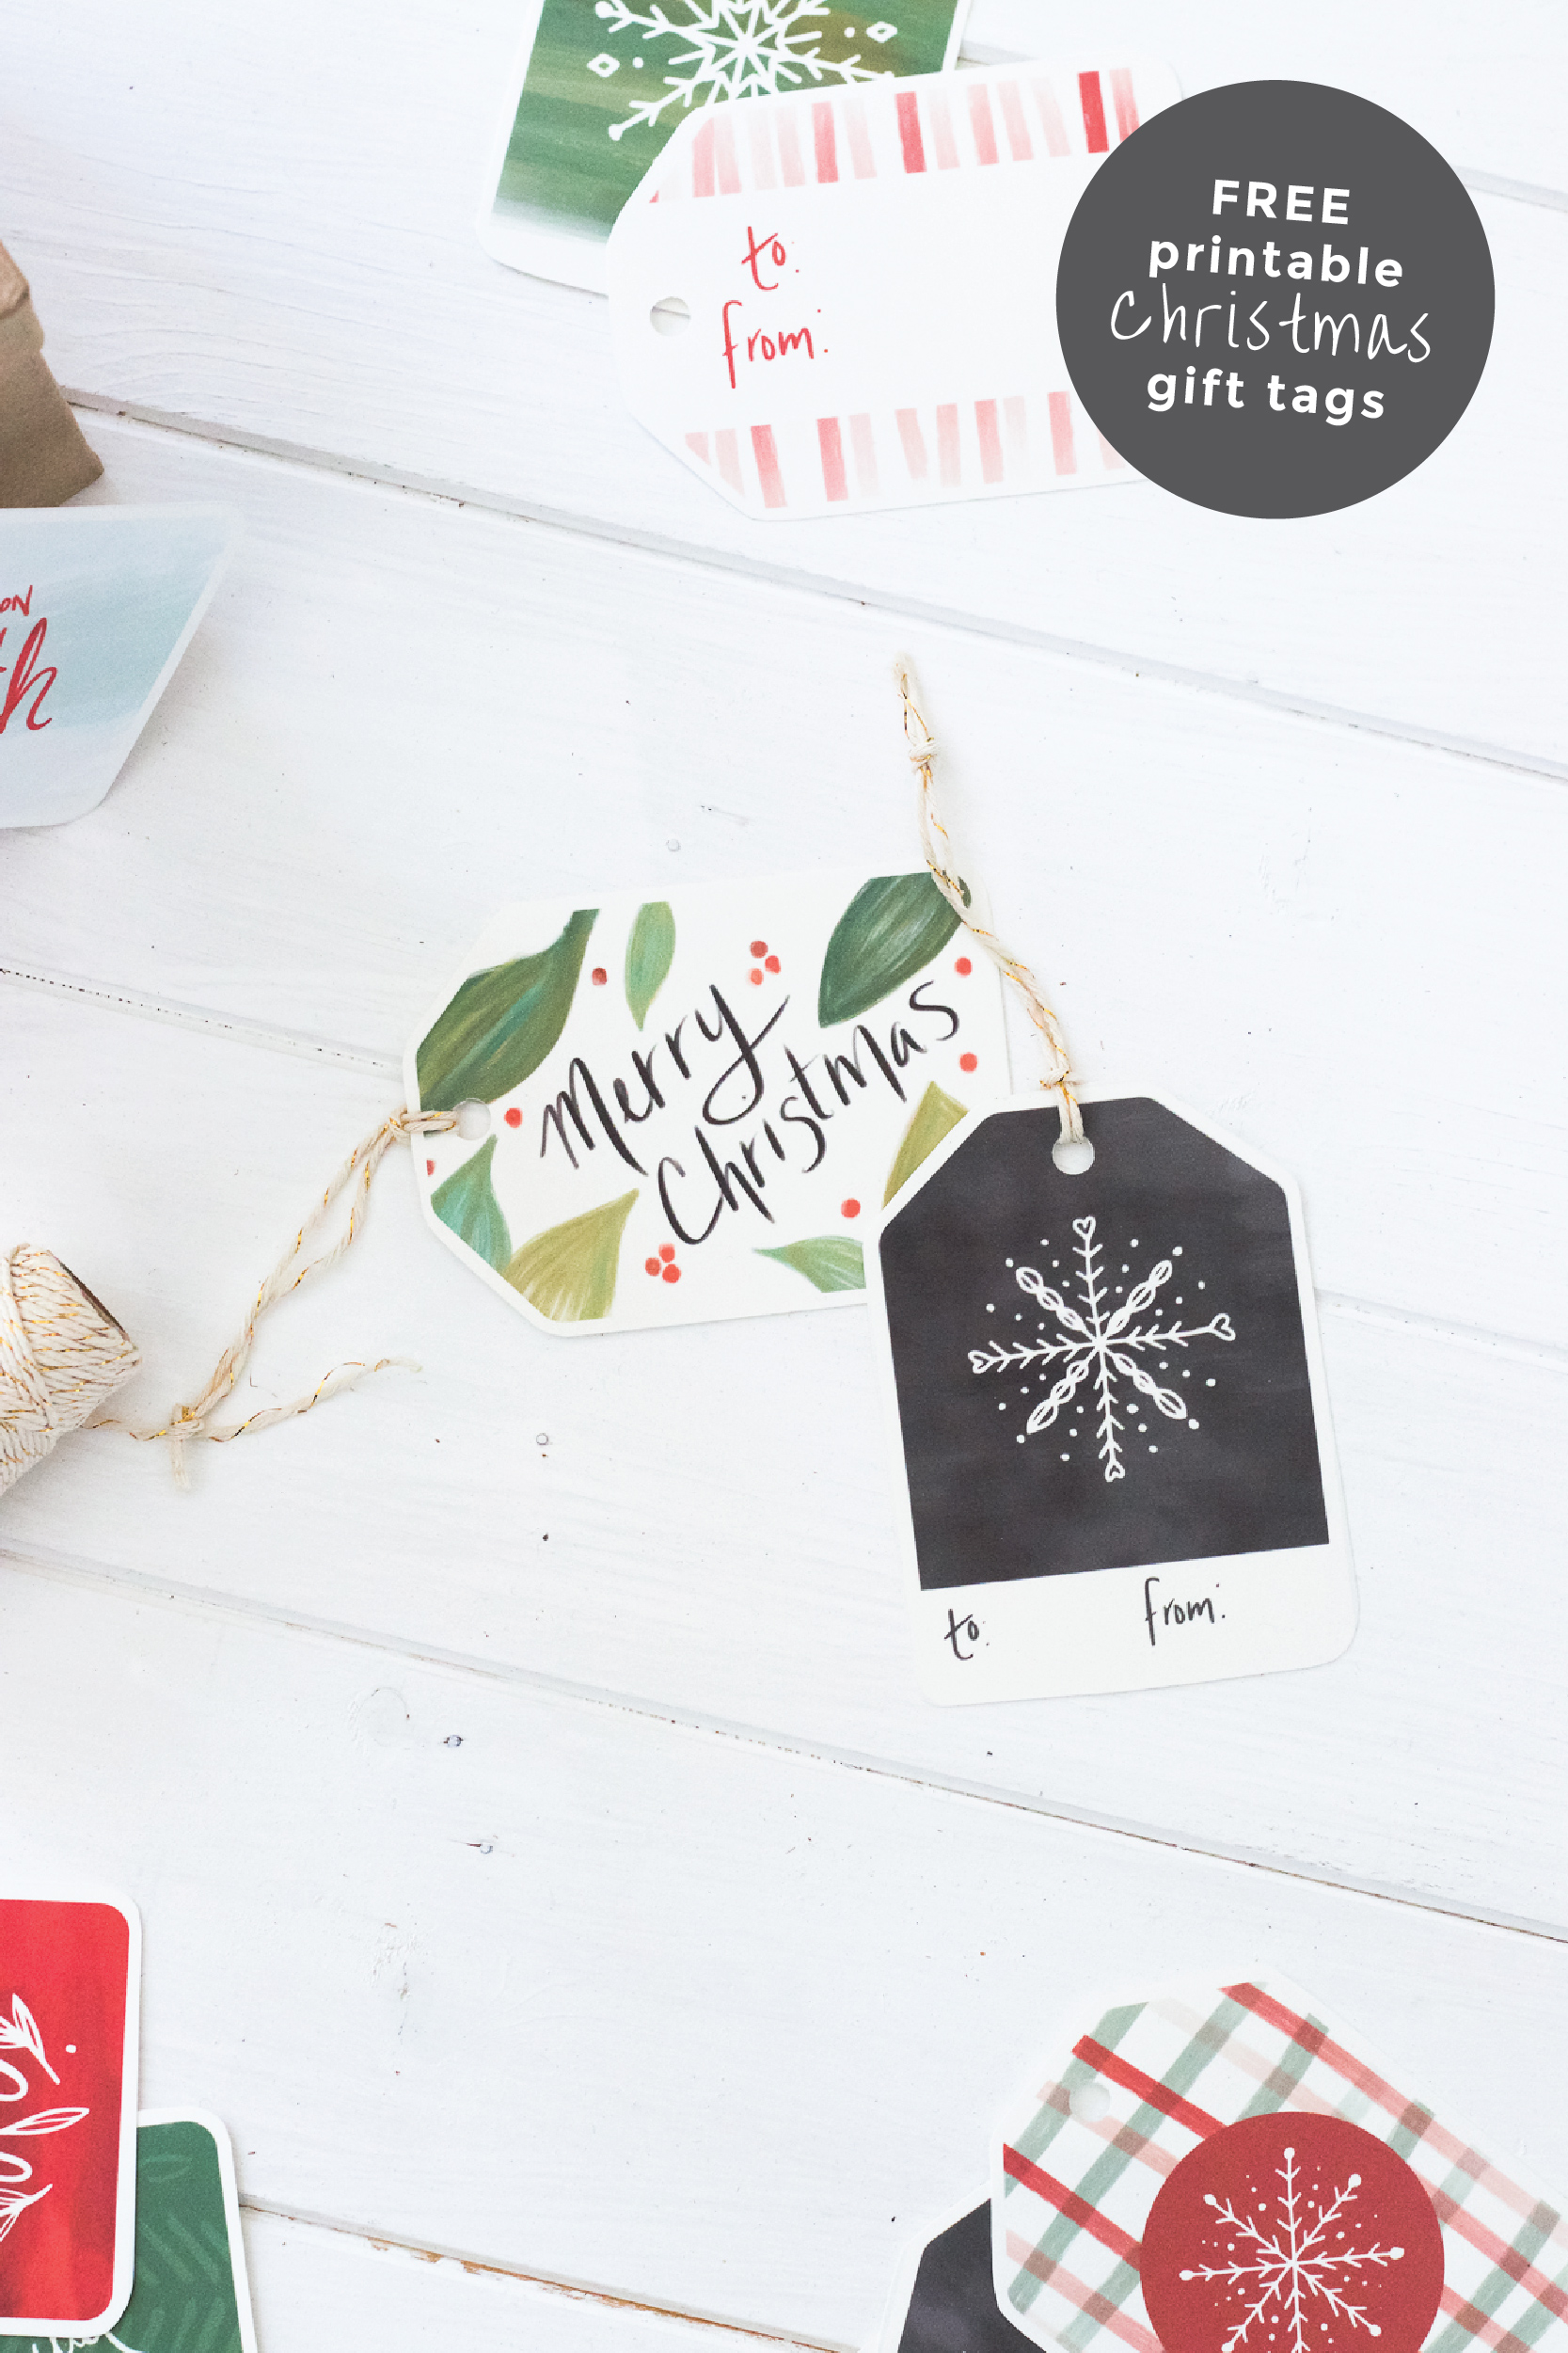 photograph regarding Free Printable Gift Tags Christmas known as Cost-free Printable Xmas Reward Tags for Attractive Reward